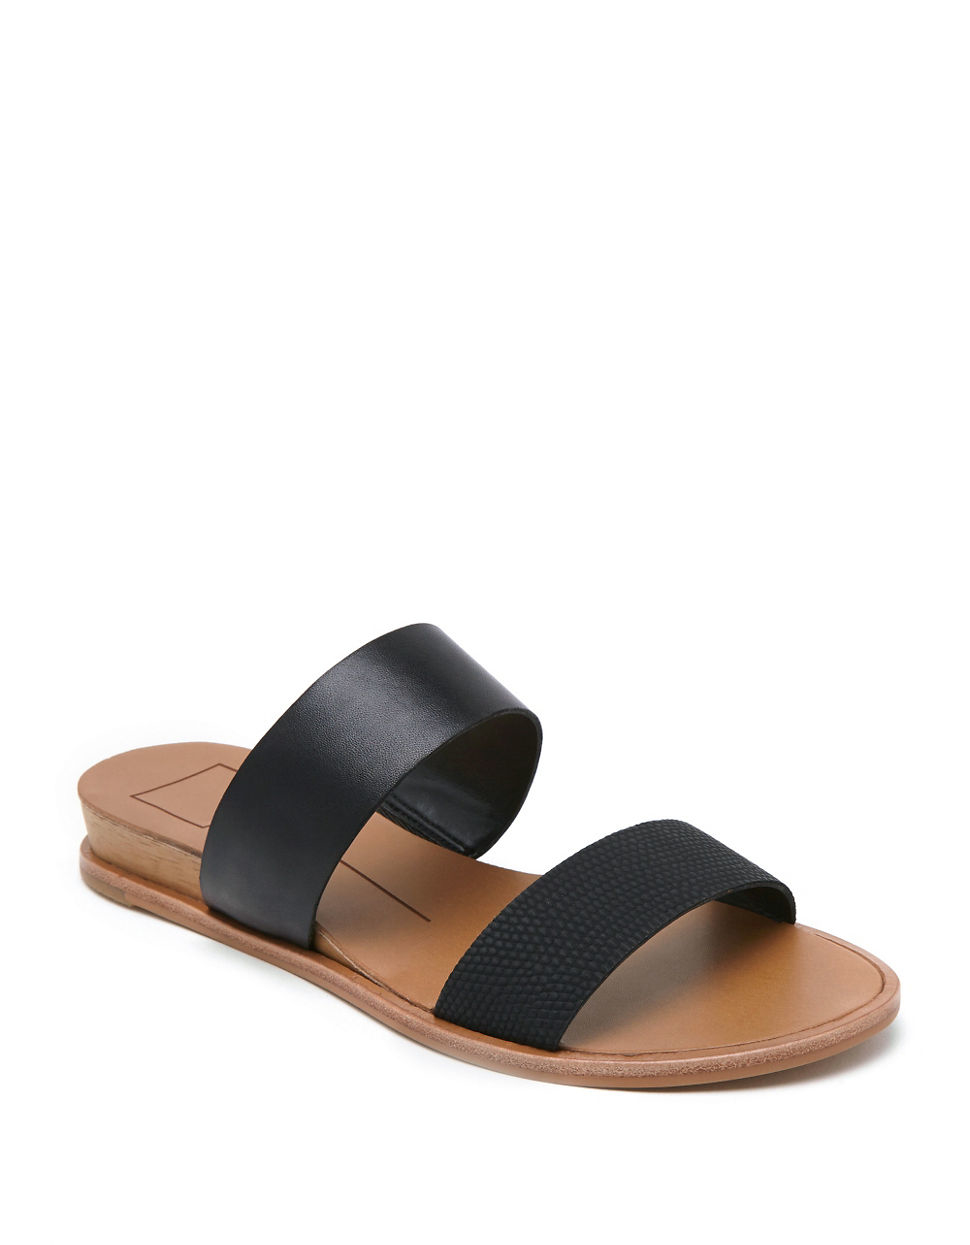 Dolce Vita Payce Leather Slide Sandals In Black Lyst